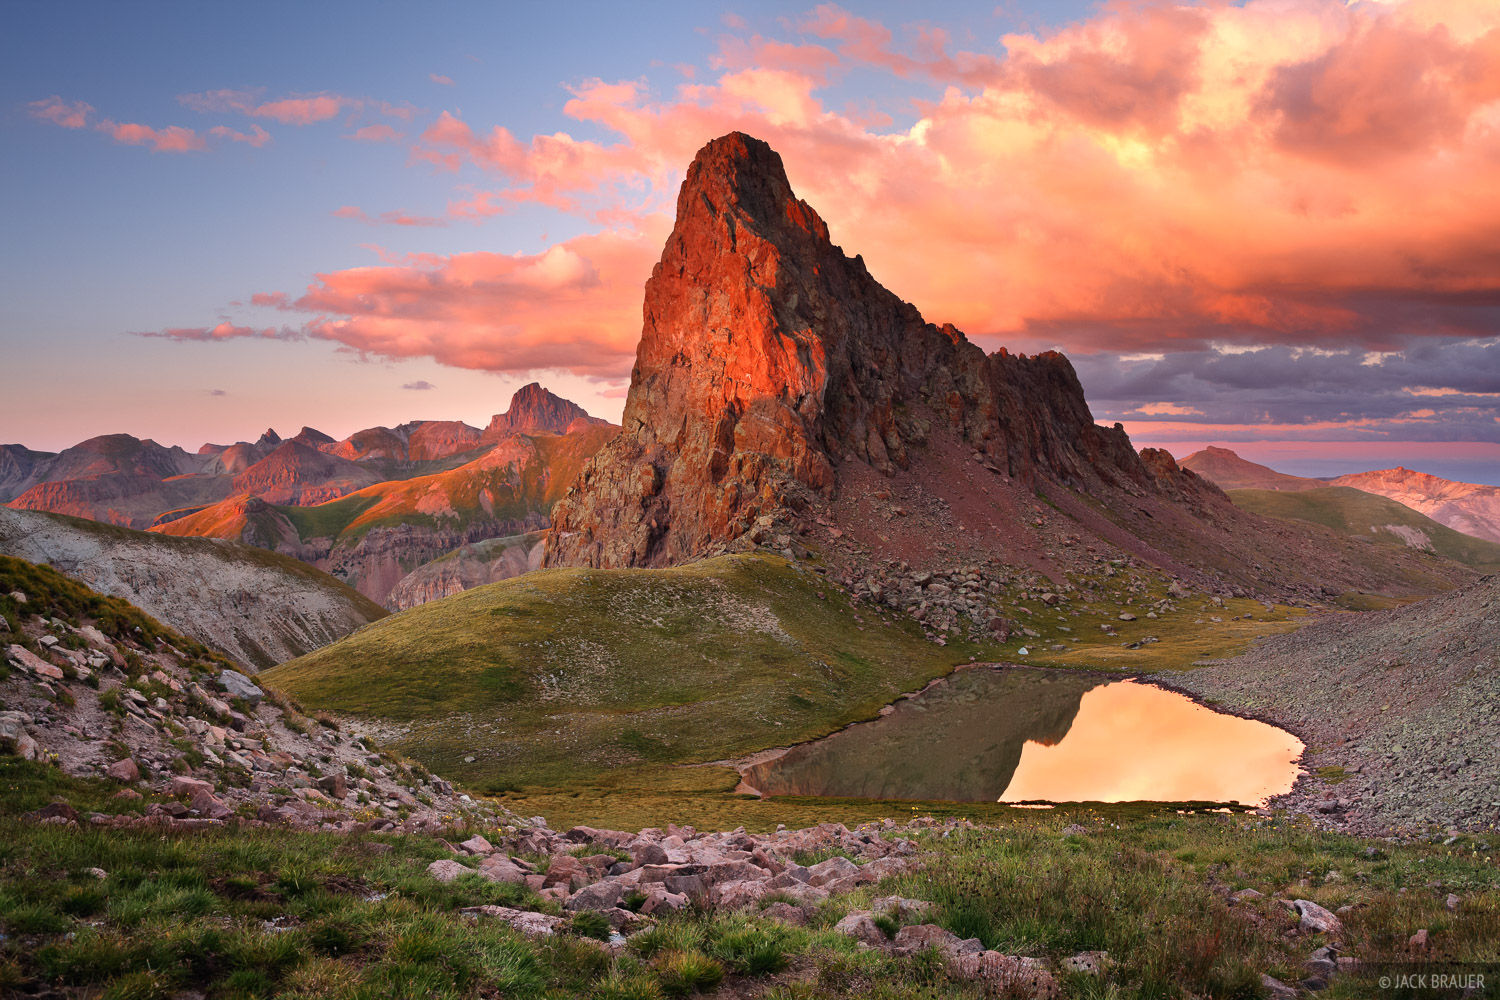 tundra, Uncompahgre Wilderness, San Juan Mountains, Colorado, sunset, photo